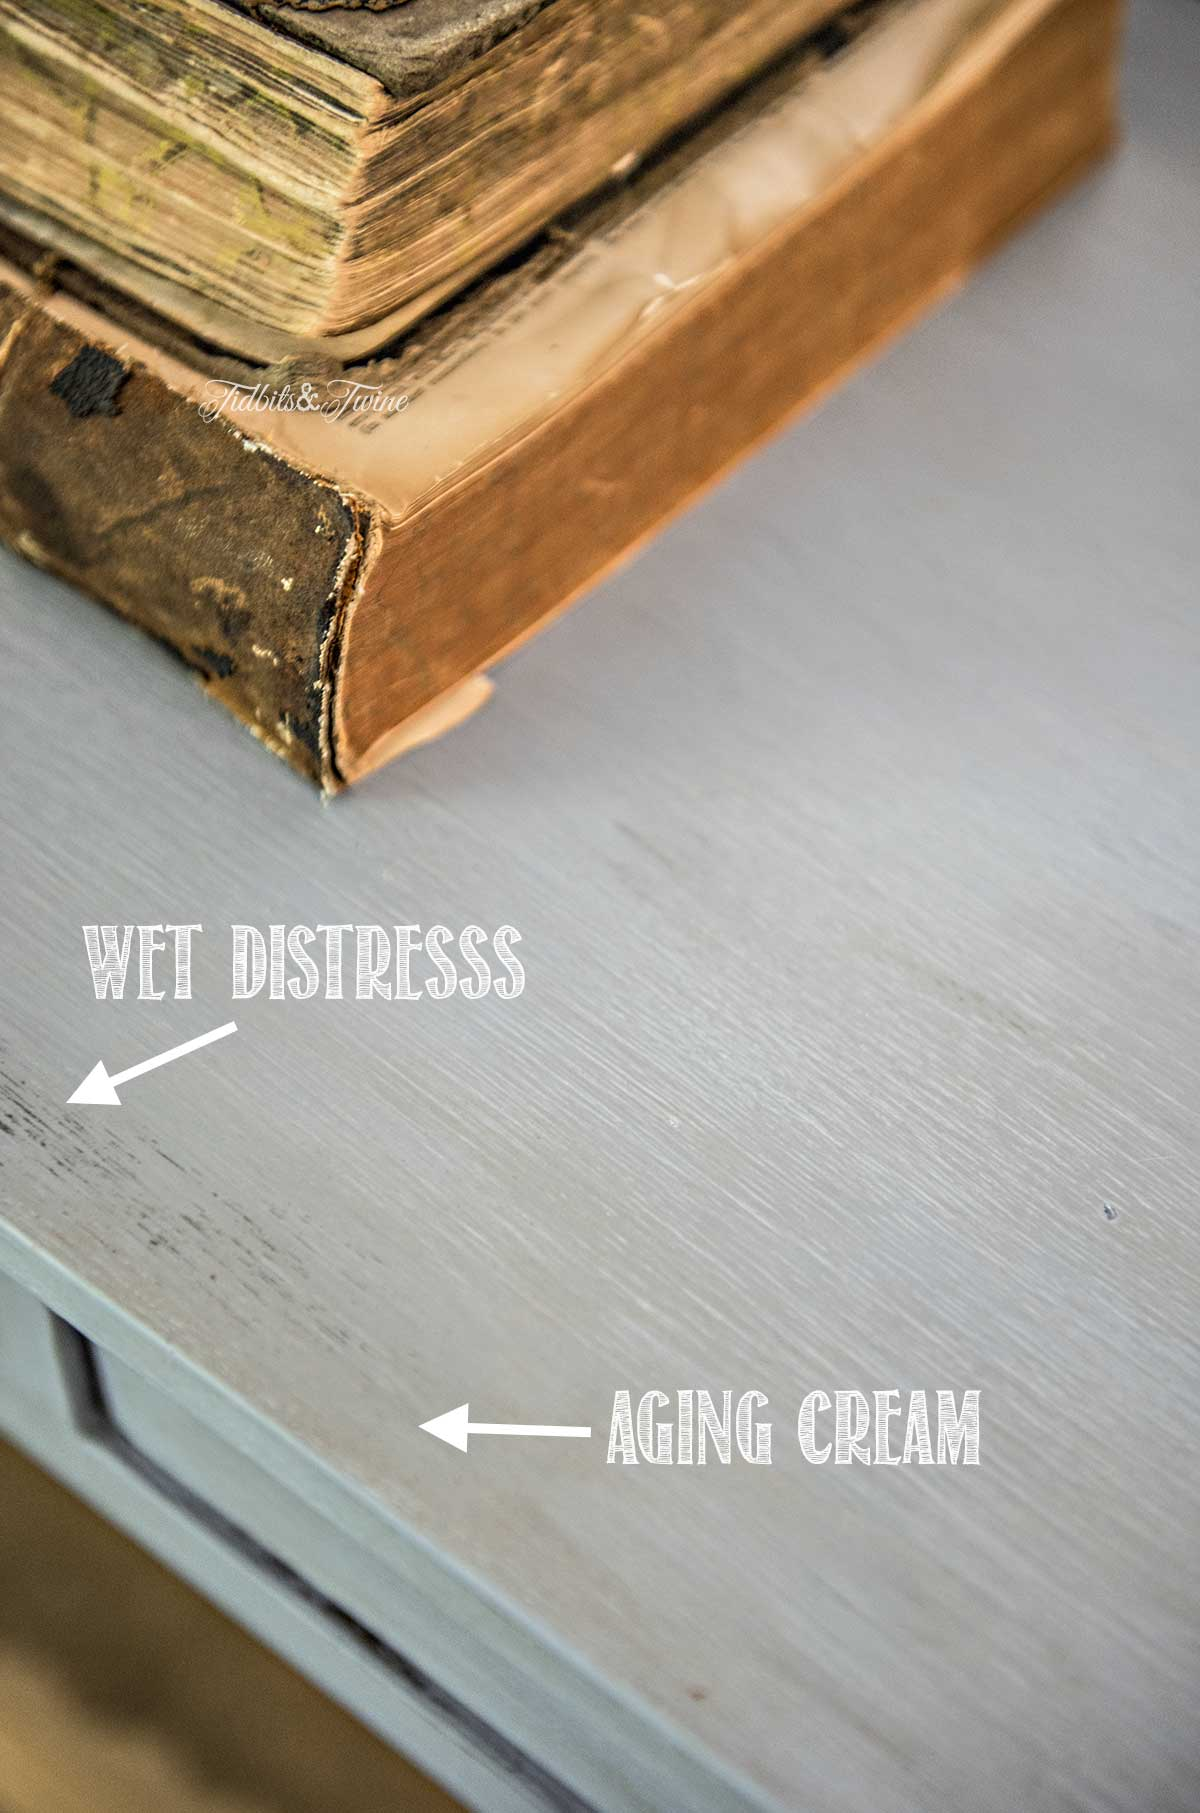 Tidbits&Twine-Chalk-Painted-Wet-Distress-and-Aging-Cream-Site